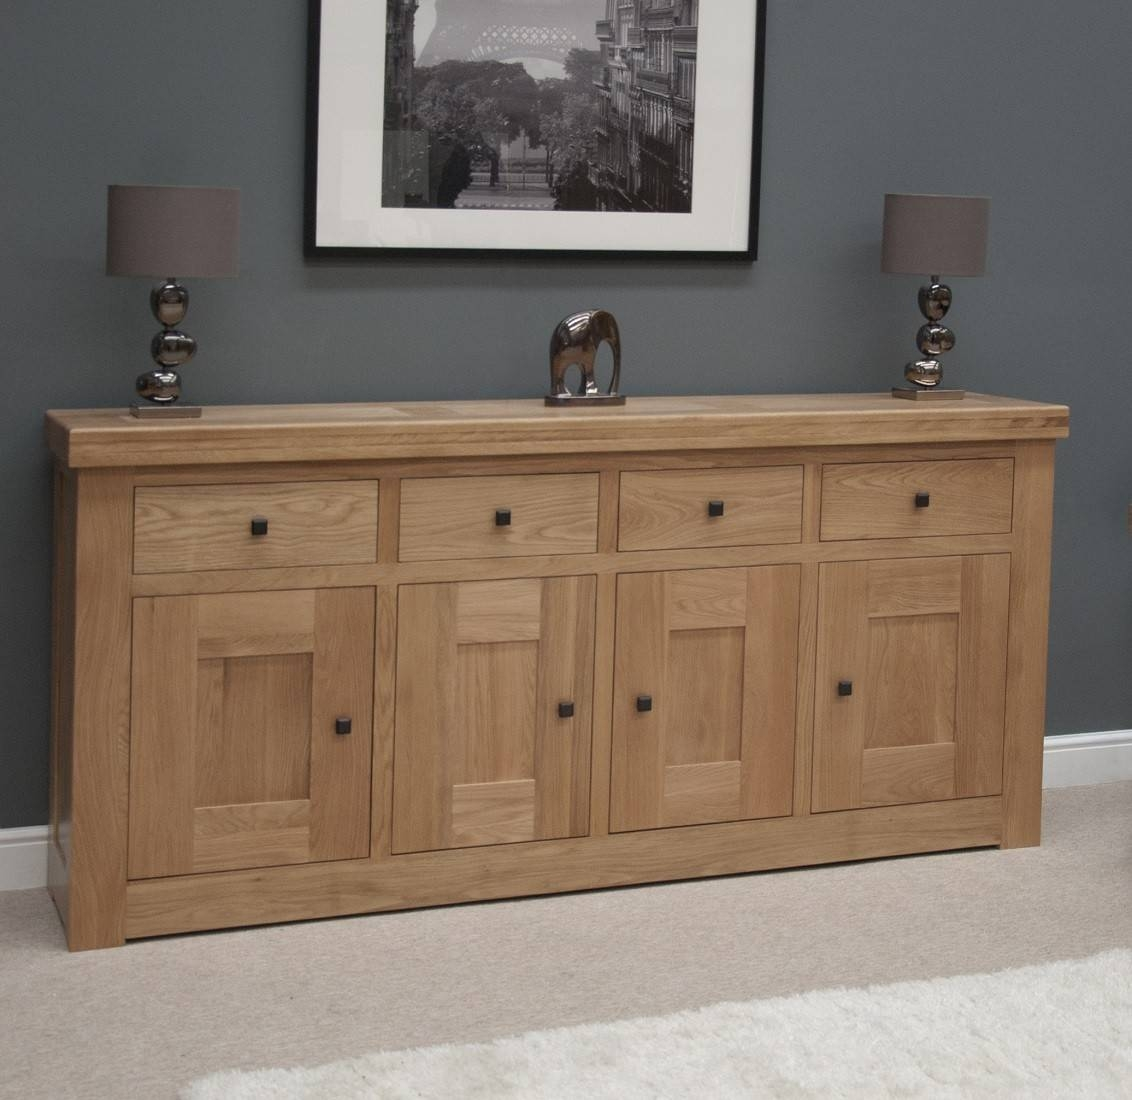 French Bordeaux Oak Extra Large 4 Door Sideboard | Oak Furniture Uk With Regard To Most Recent Solid Oak Sideboards (#6 of 15)